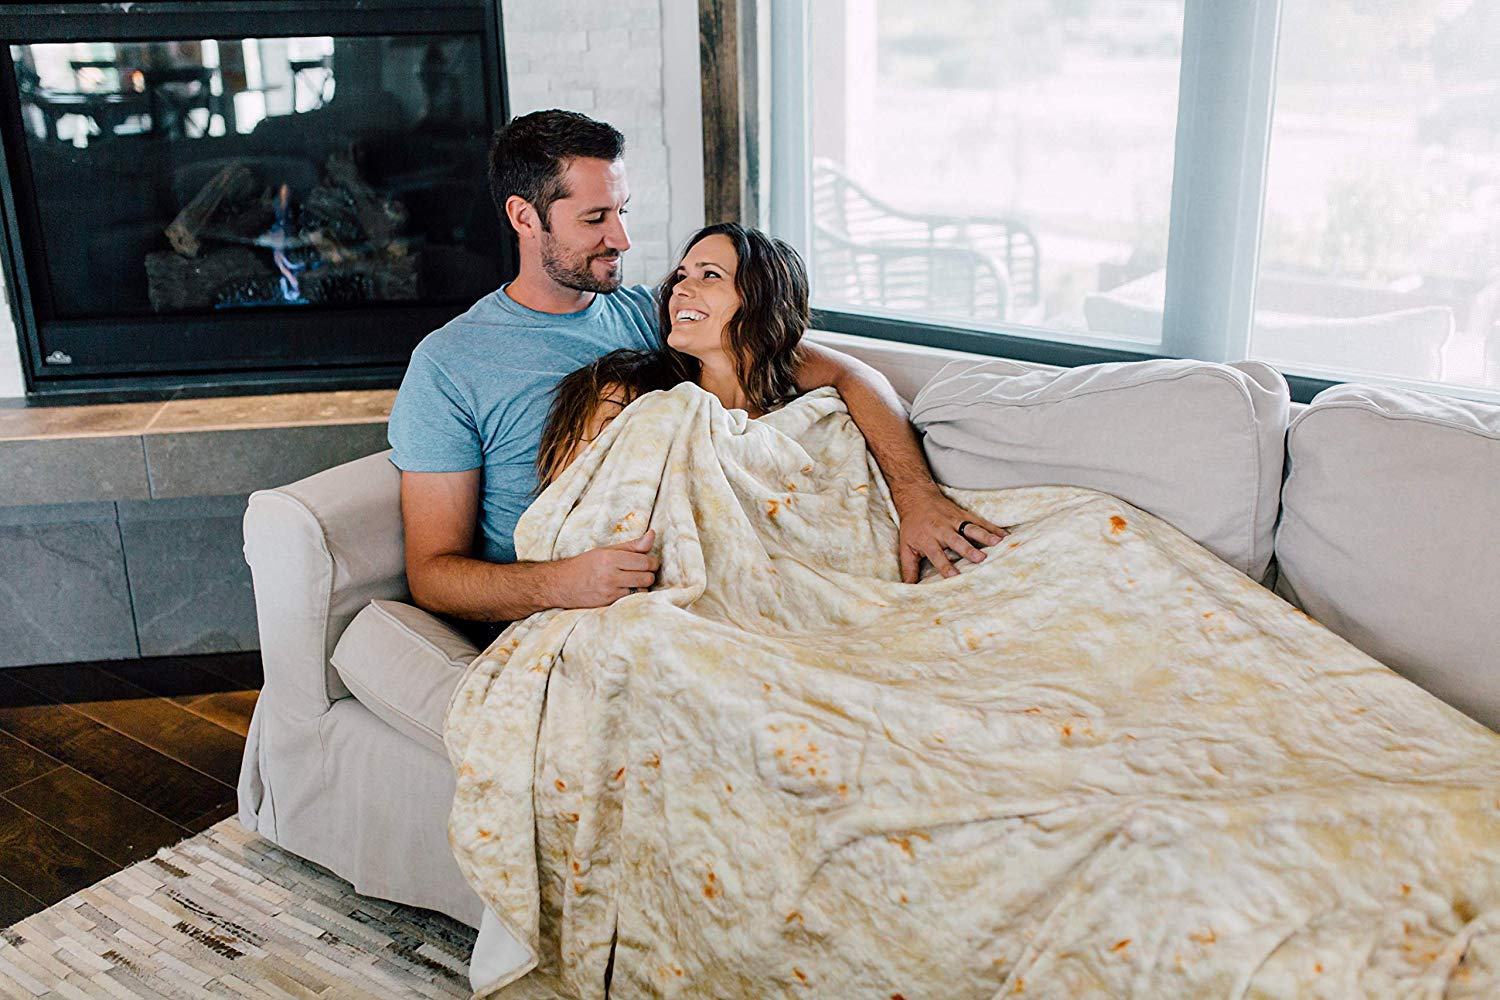 A man and a woman laying on couch with real looking burrito blanket that looks like a tortilla shell taco